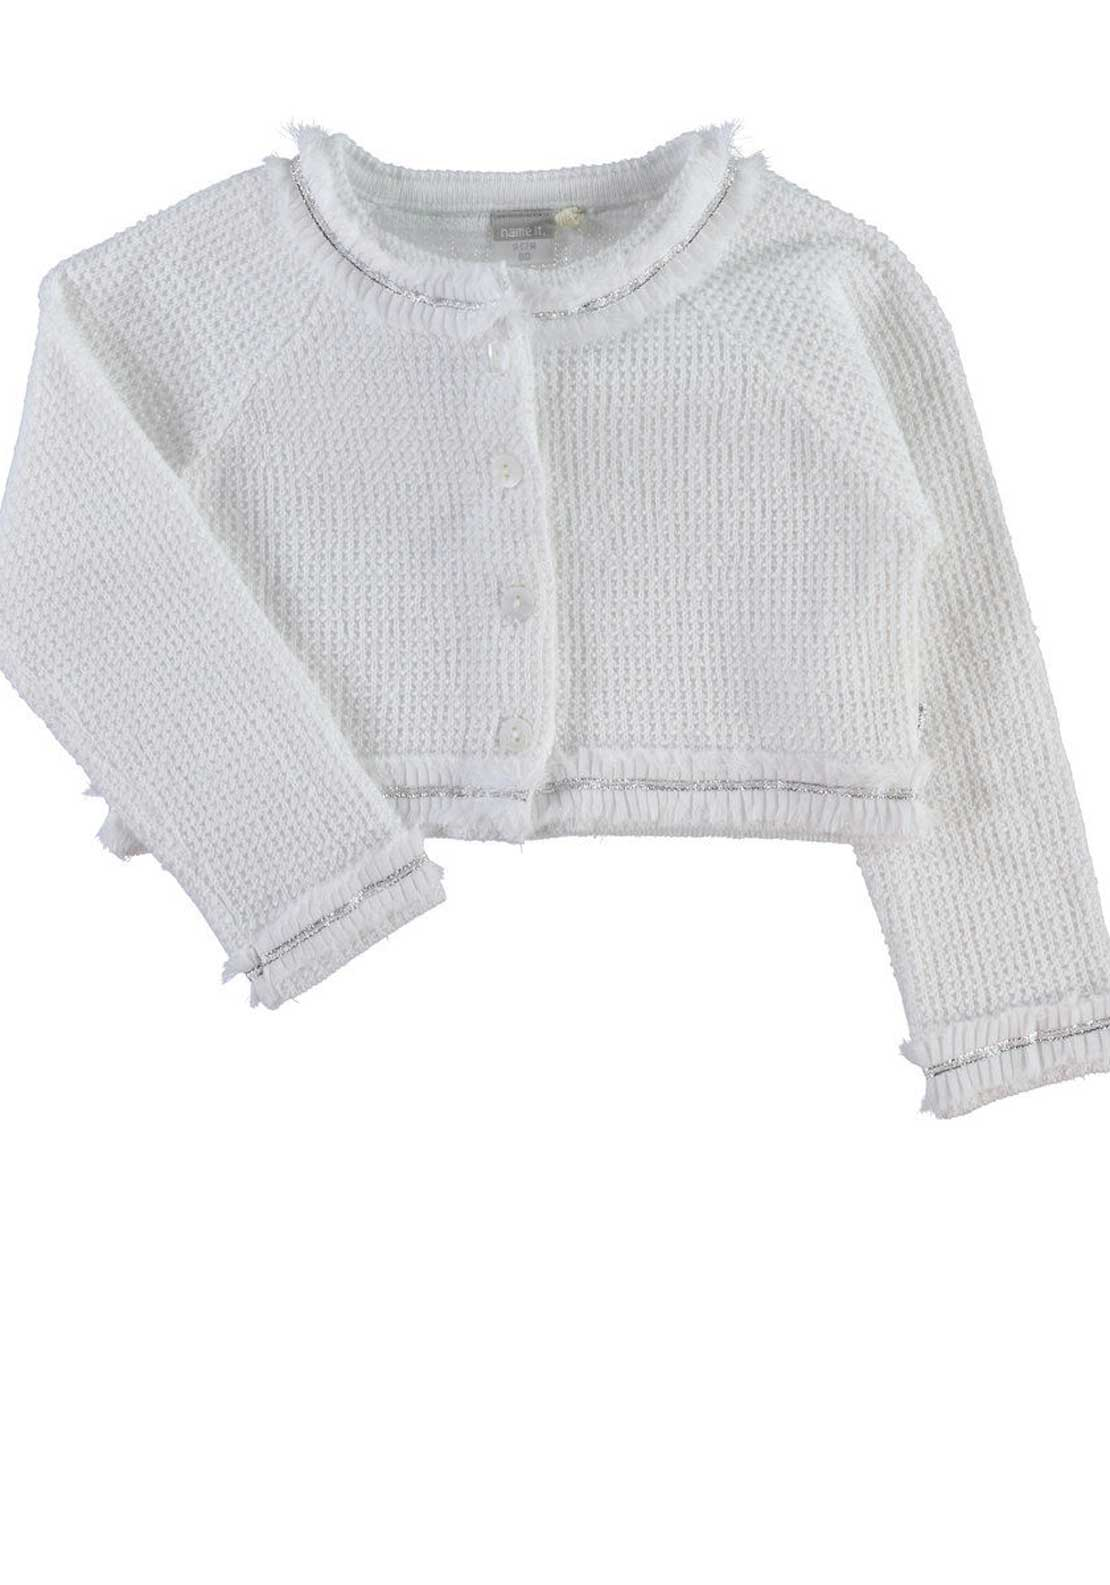 Name It Mini Girls Gullie Knitted Bolero, Bright White